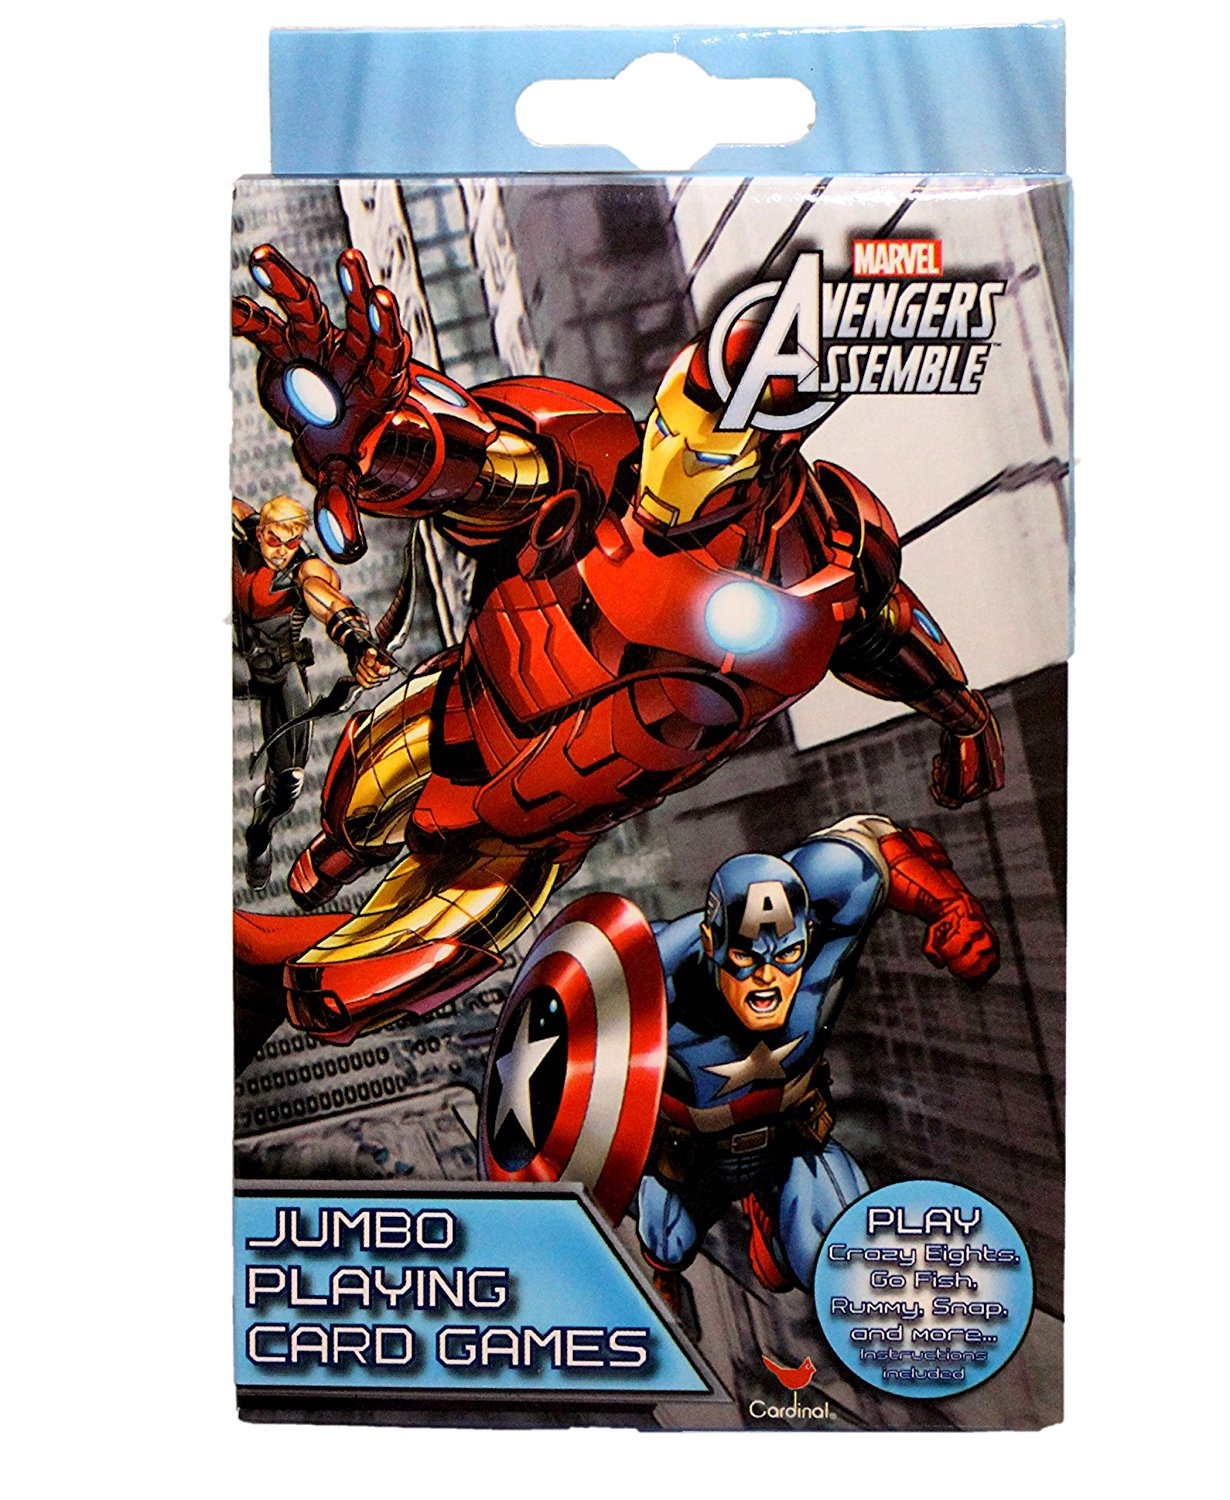 Marvel Avengers Assemble Jumbo Playing Card Games